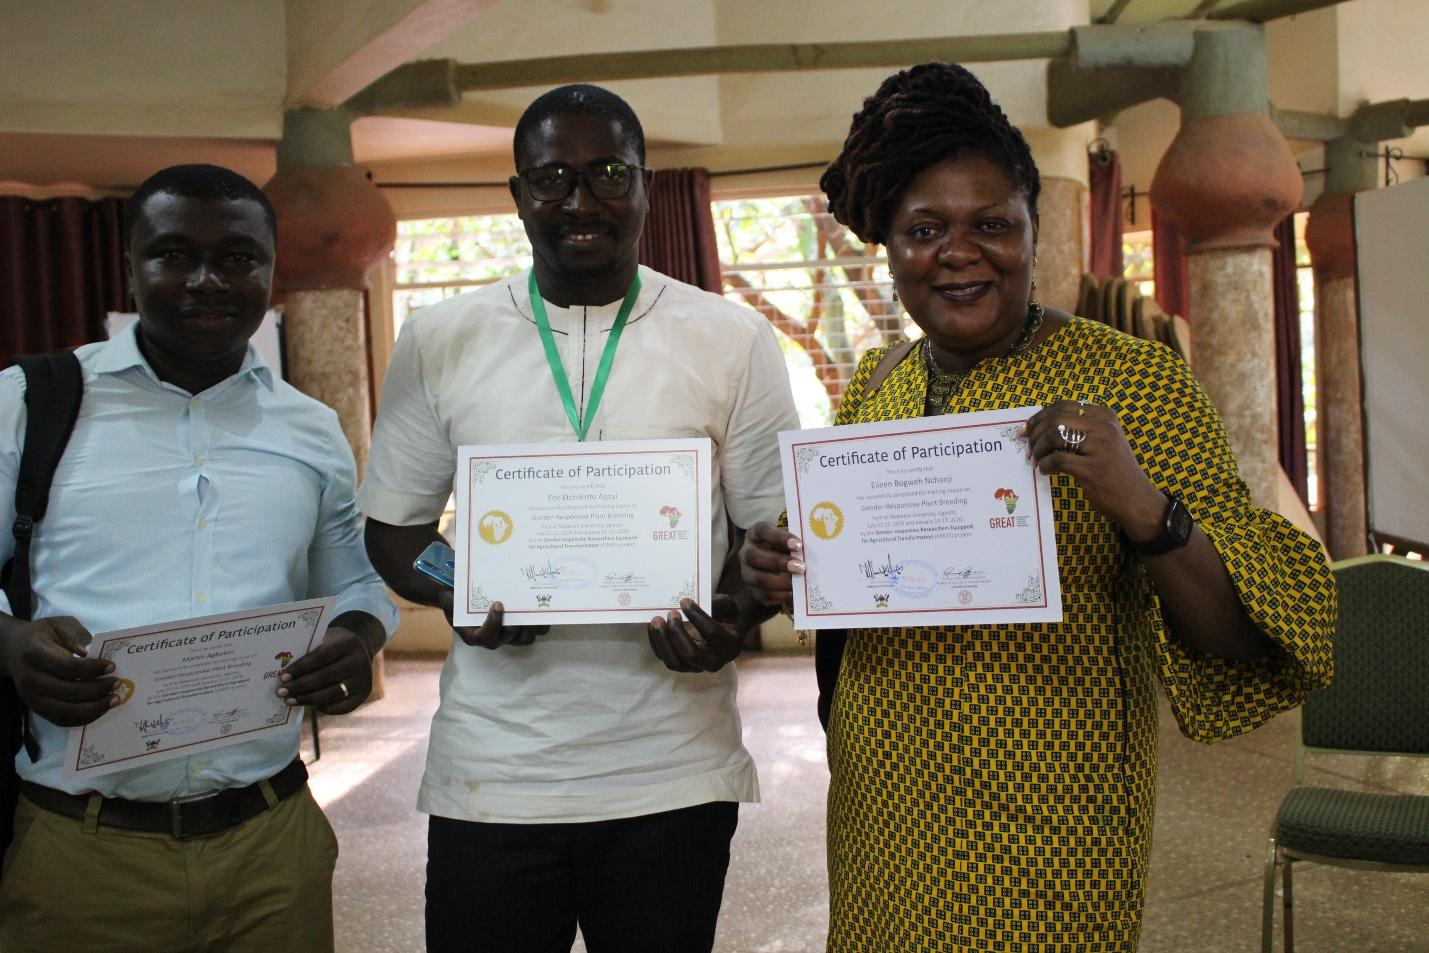 Above: Course participants Richard Yaw Agyare, CSIR Ghana; Eric Agoyi and Eileen Nchangi showing off their GREAT course certificates after completion of the course.